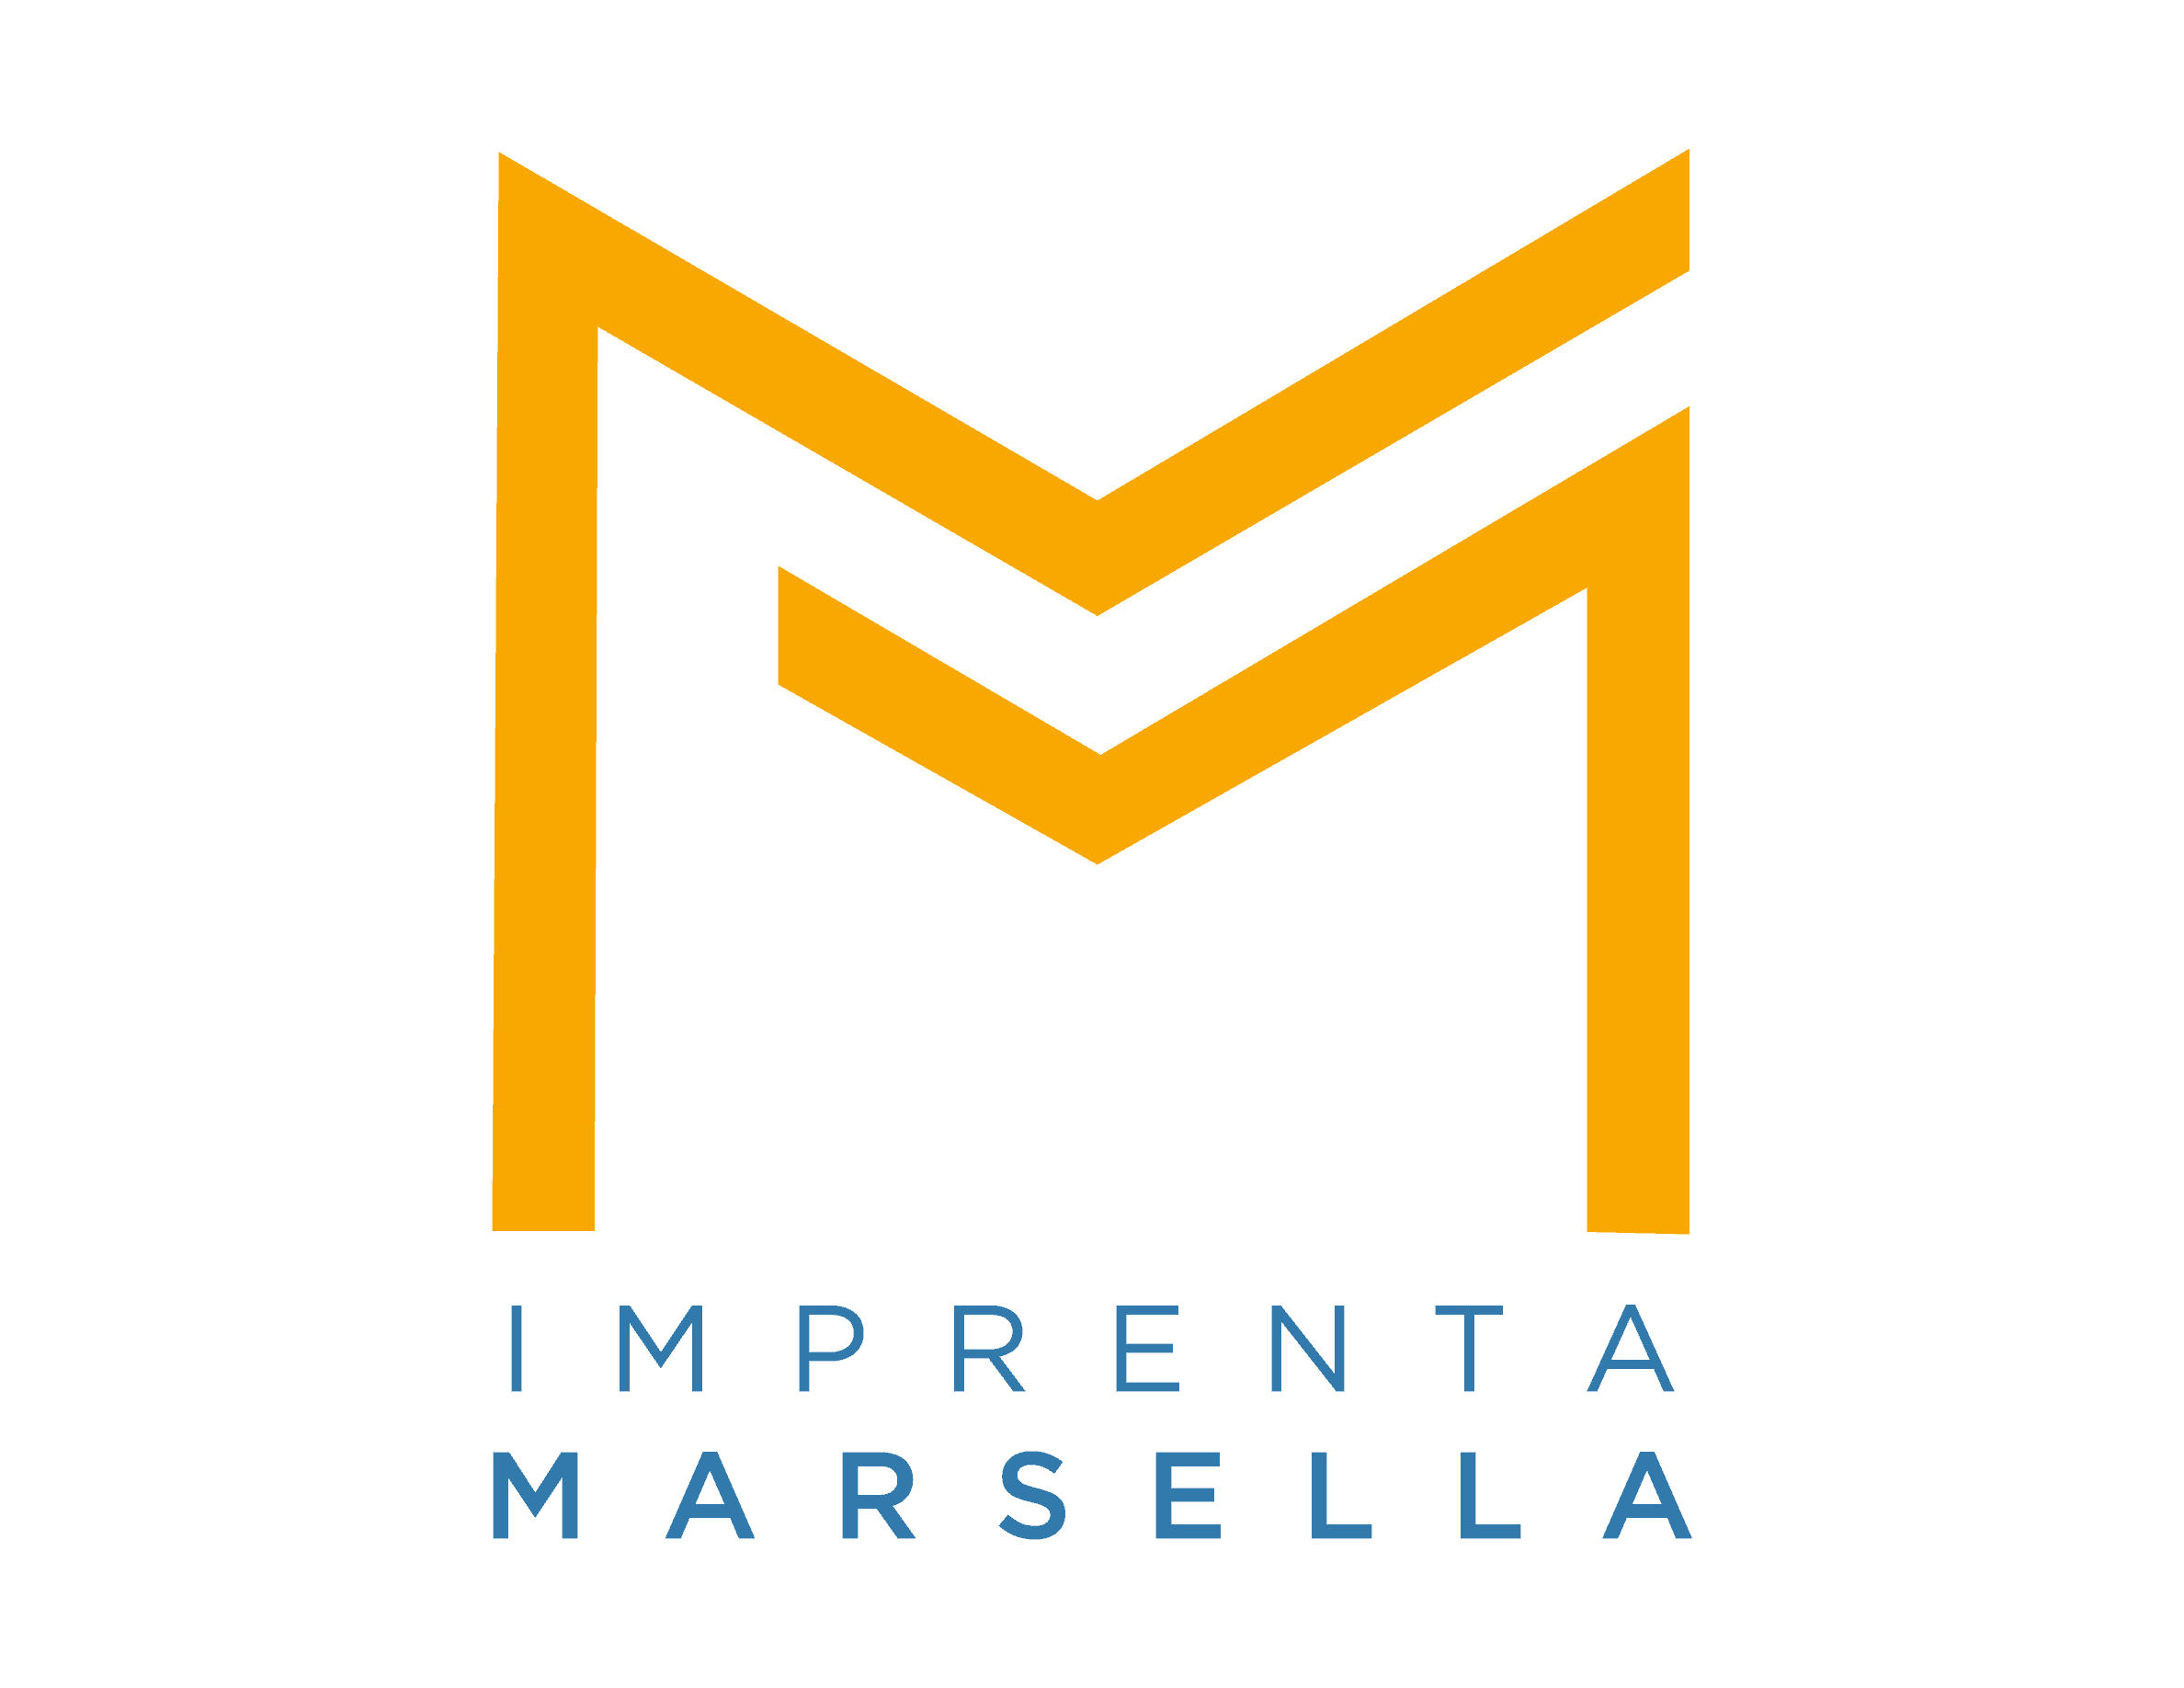 Imprenta Marsella